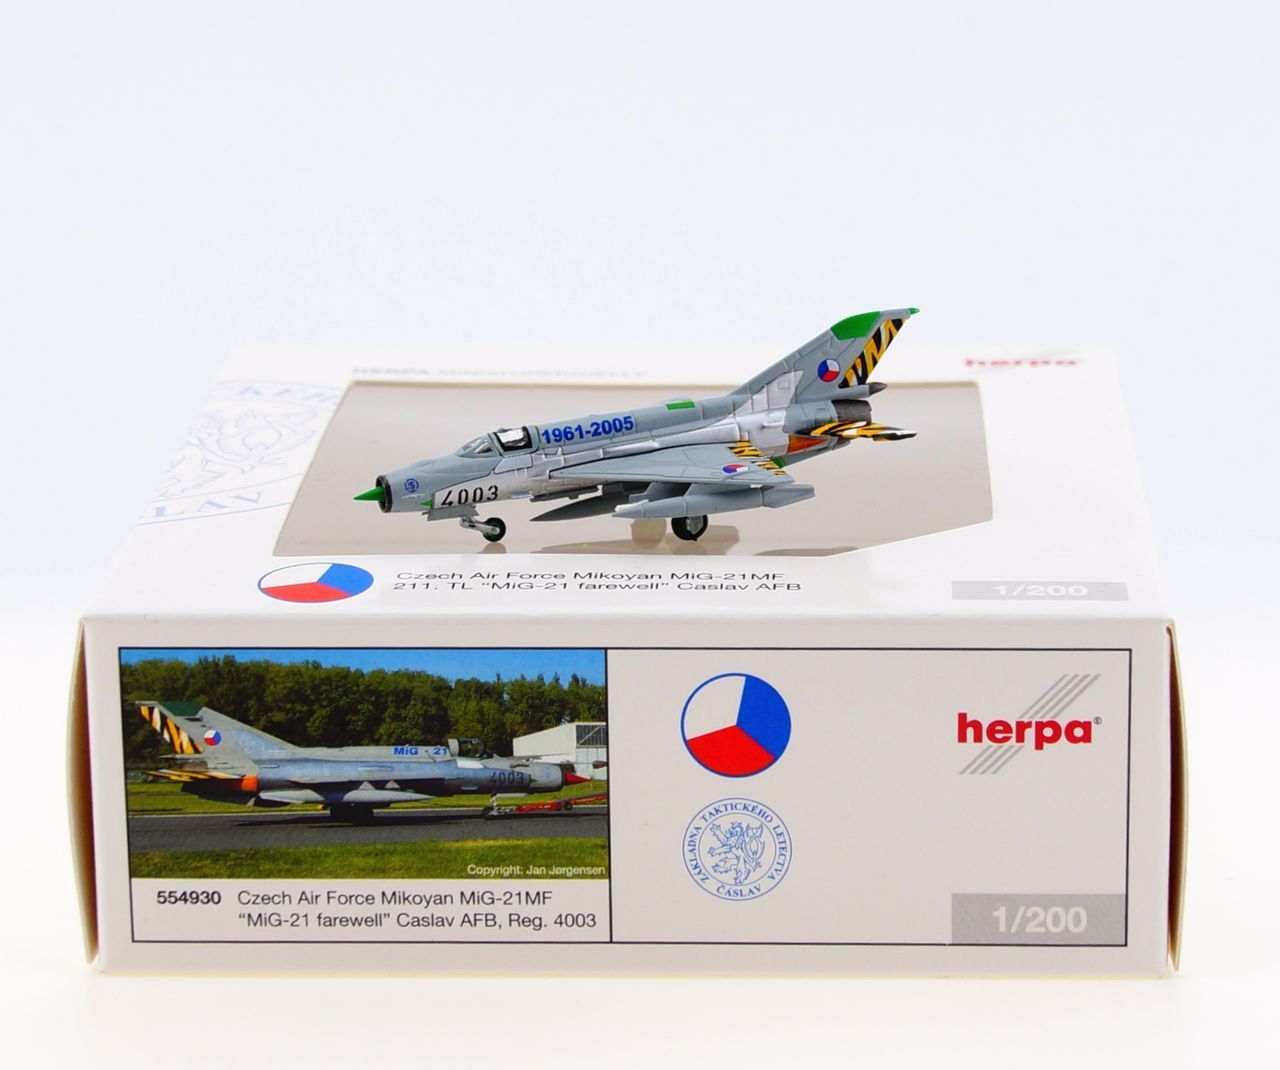 Herpa 1:200 552400 3rd Fighter Airbase Mikoyan mig-21mf Bulgarian Air Force